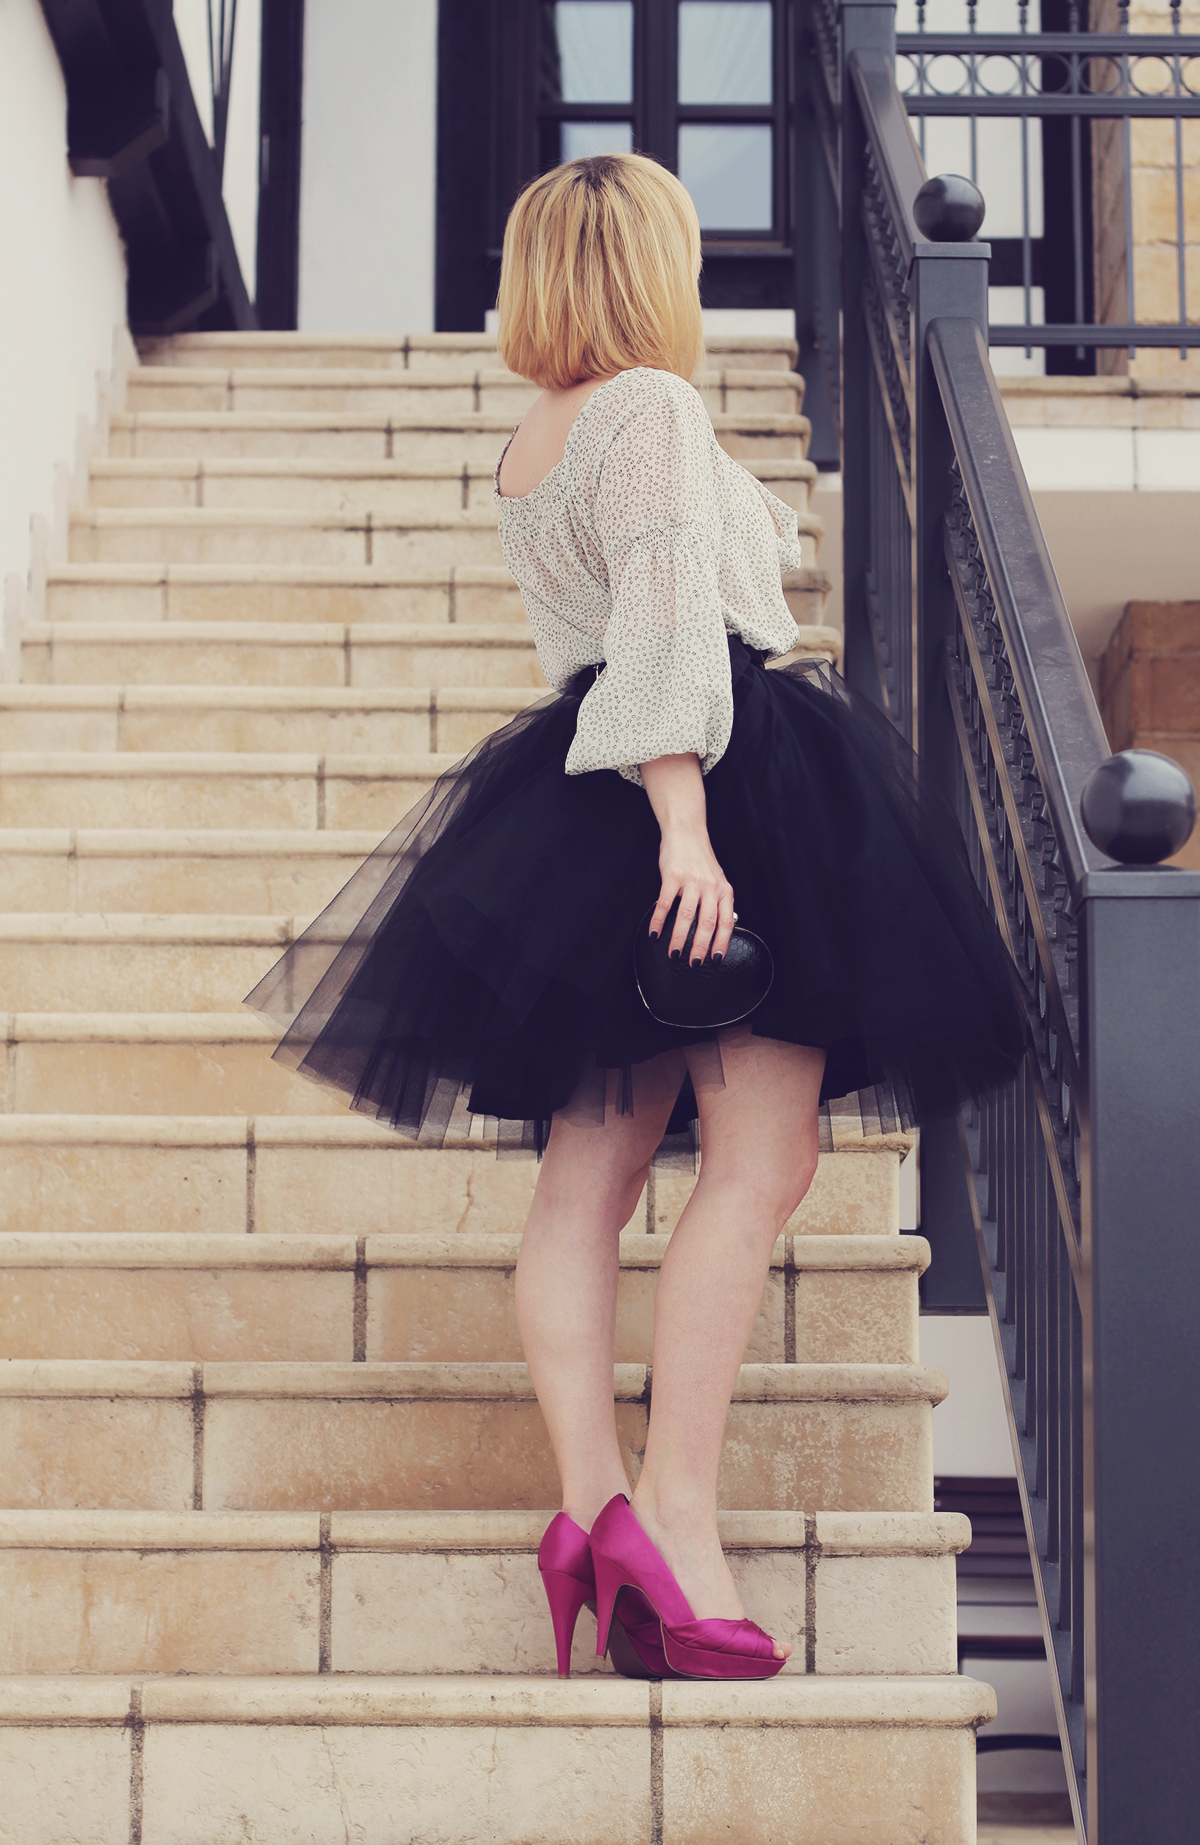 the black tulle skirt and white chemise top